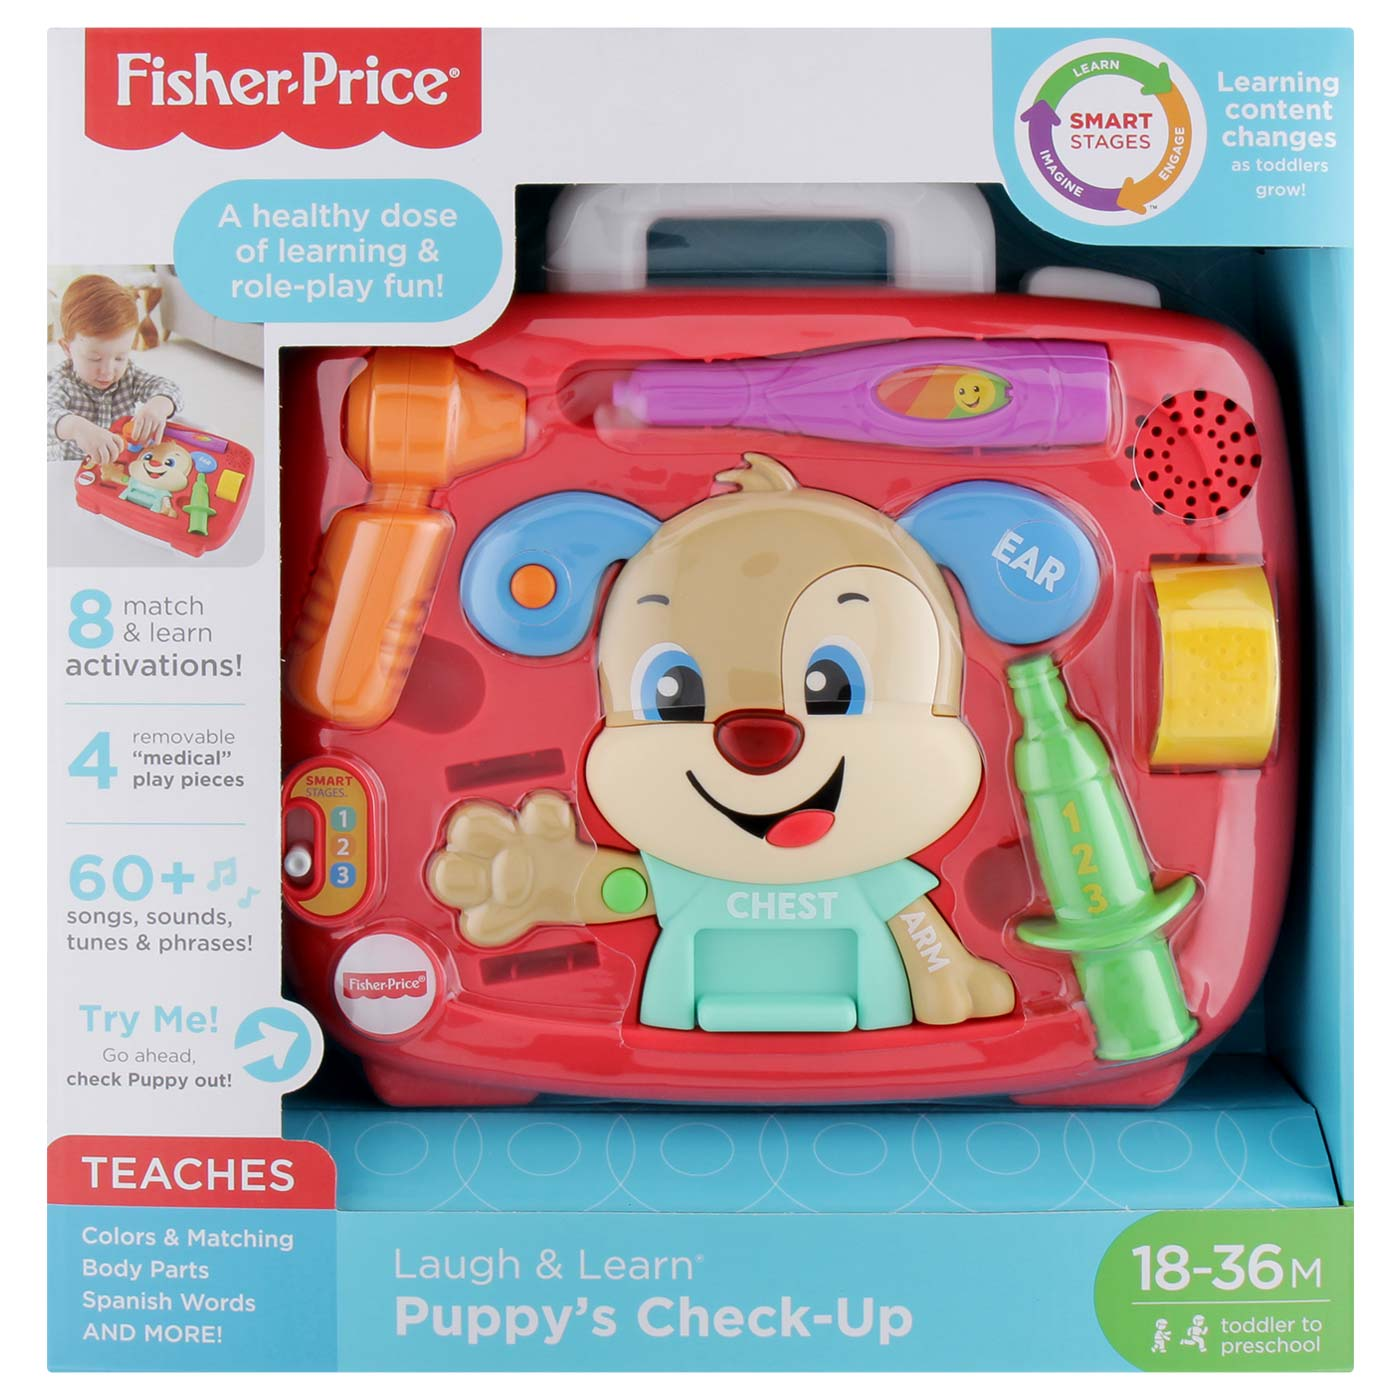 Fisher Price FF  Smart Stages Puppy's Check Up Kit 1